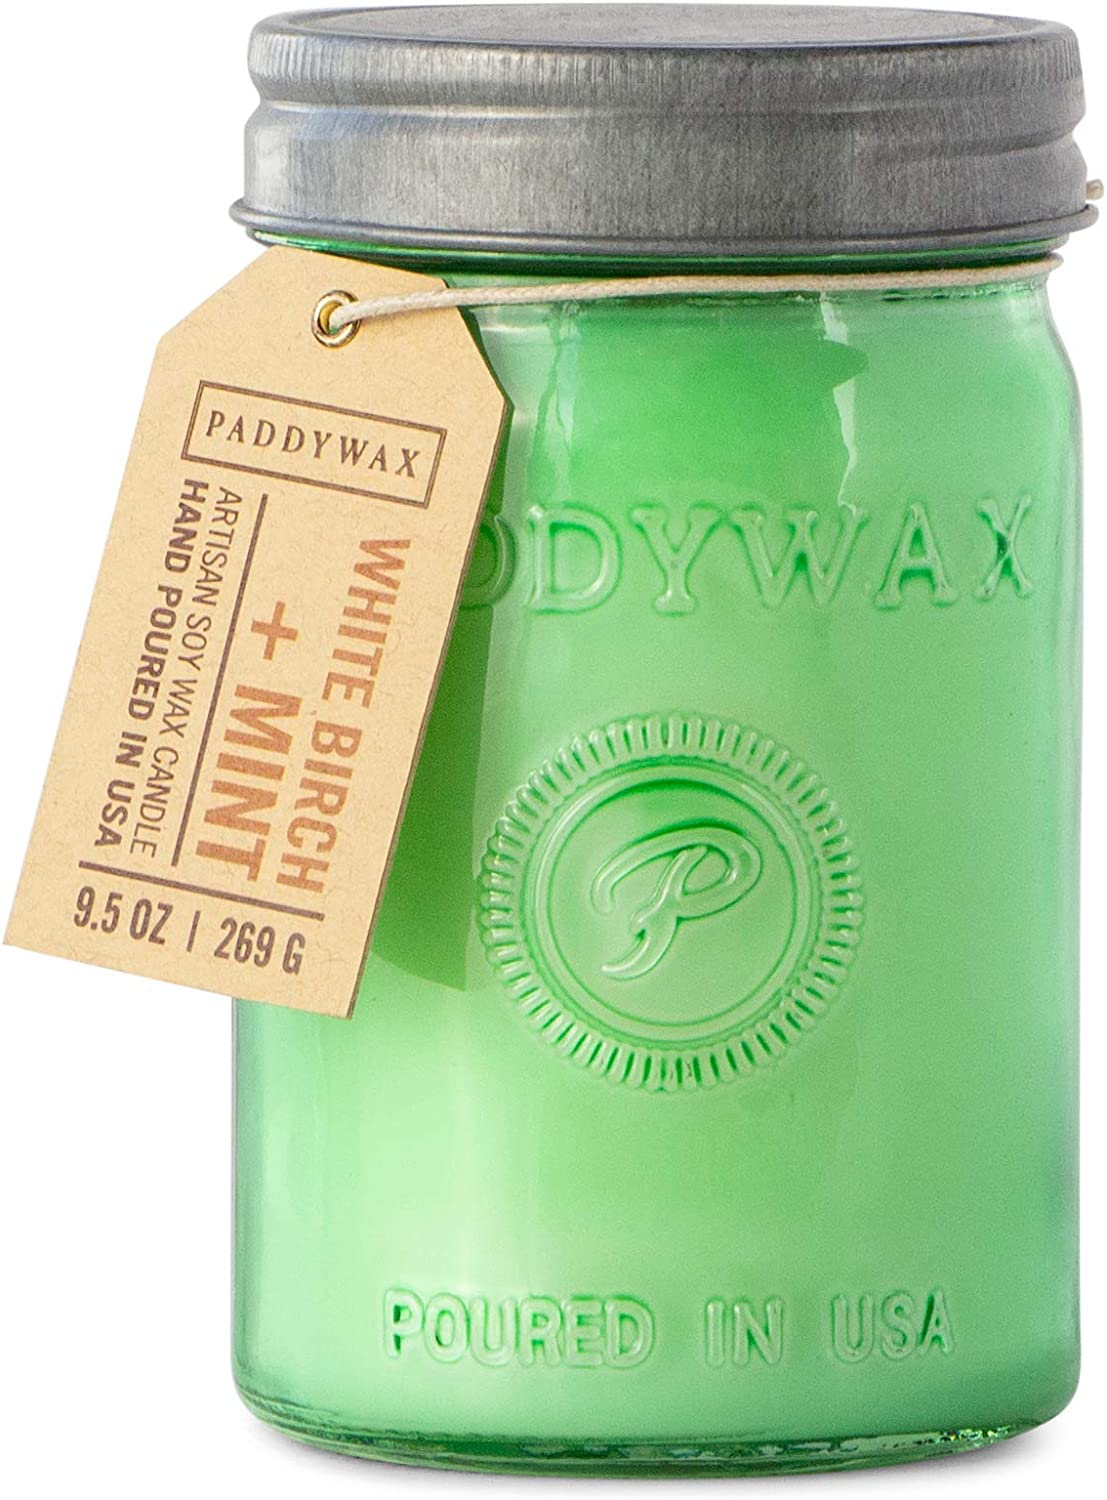 Paddywax Candles Relish Collection Soy Wax Blend Candle in Mason Jar Candle, Medium- 9.5 Ounce, White Birch + Mint: Home & Kitchen